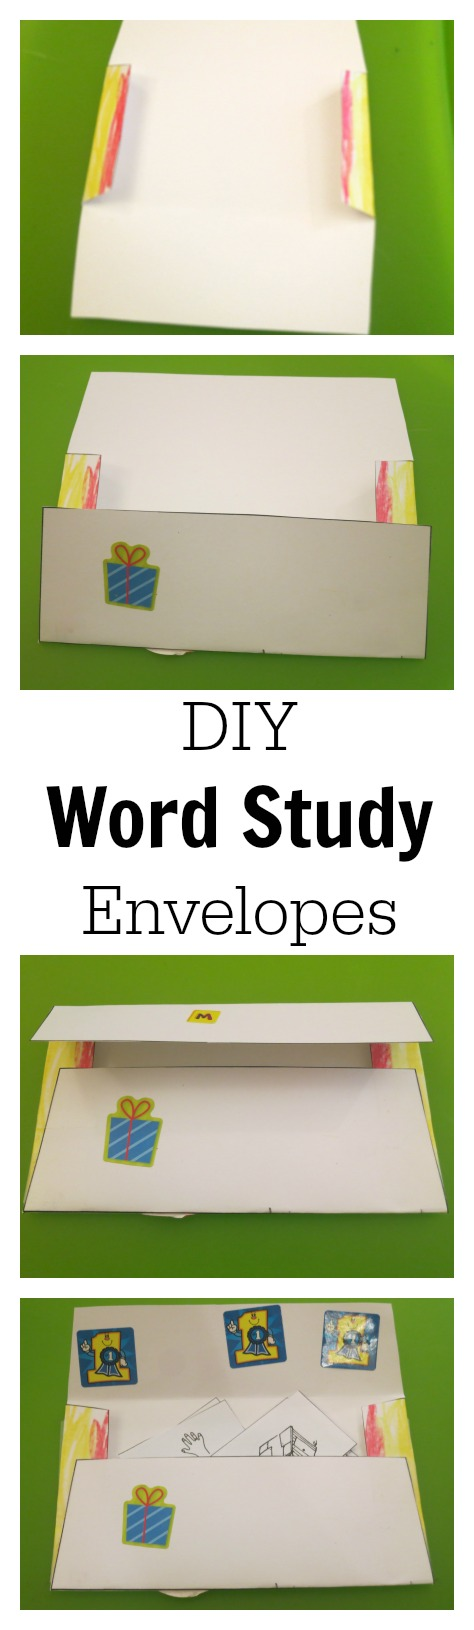 DIY Word Study Envelopes for Organization of Words-Pictures